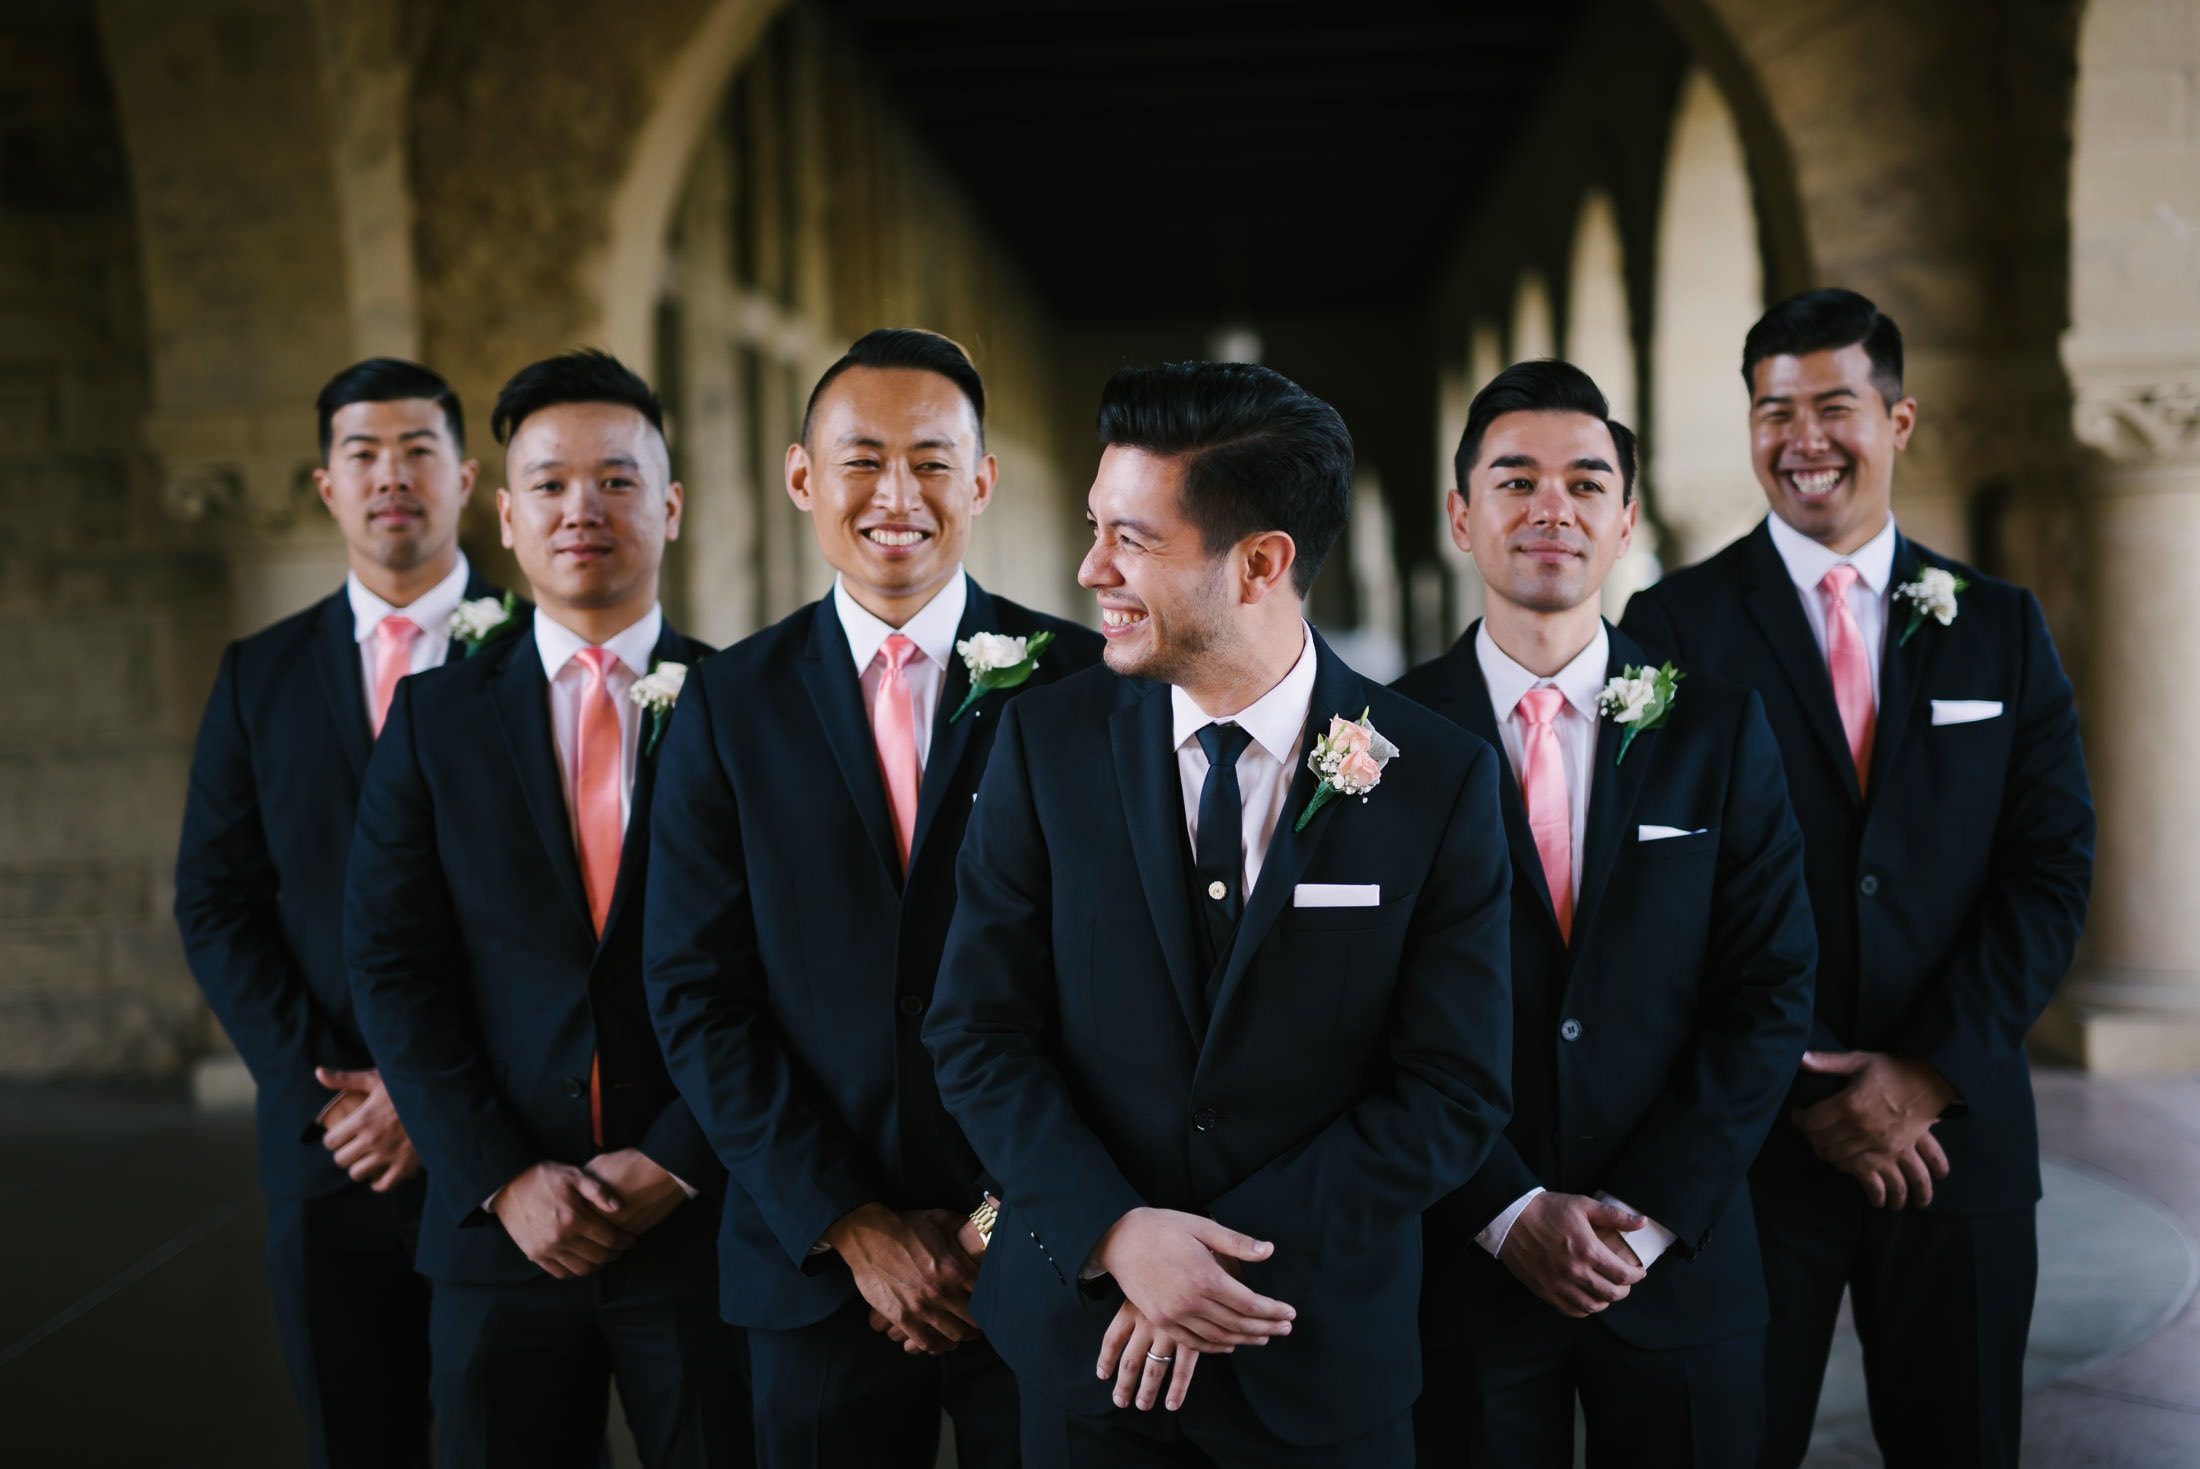 groom and groomsmen having fun at stanford wedding